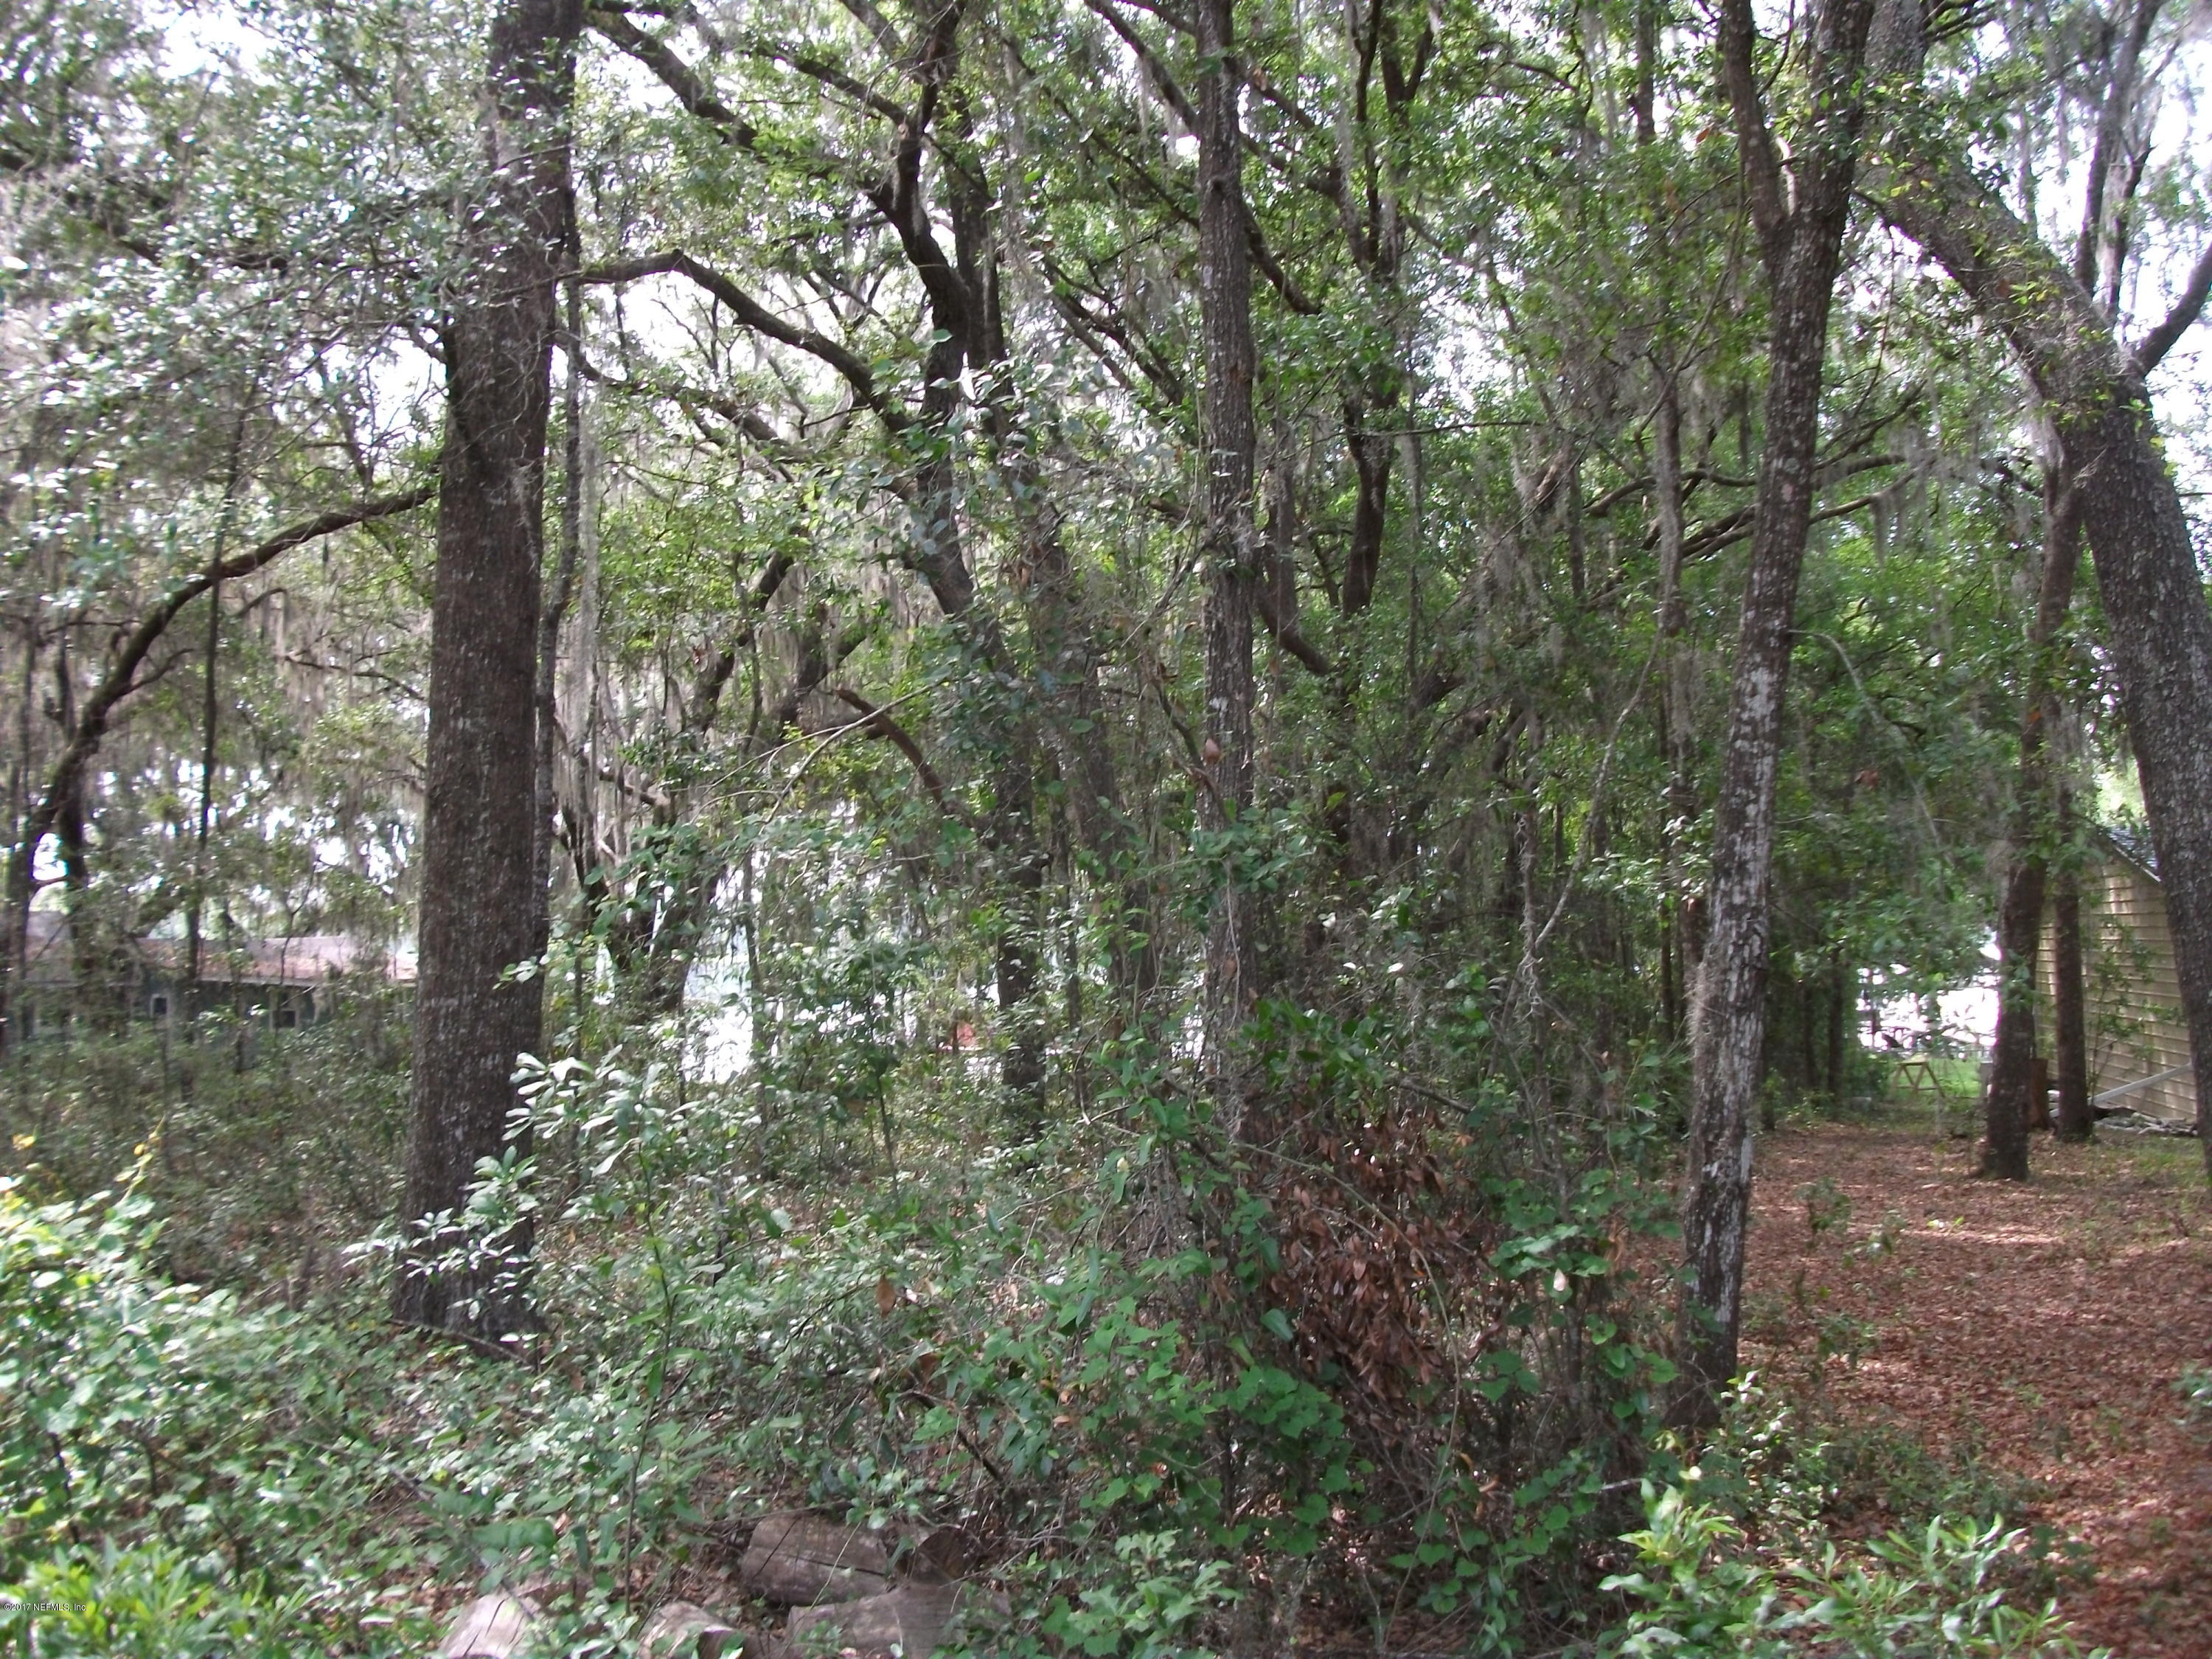 531 HILLSBOROUGH, FLORAHOME, FLORIDA 32140, ,Vacant land,For sale,HILLSBOROUGH,887652